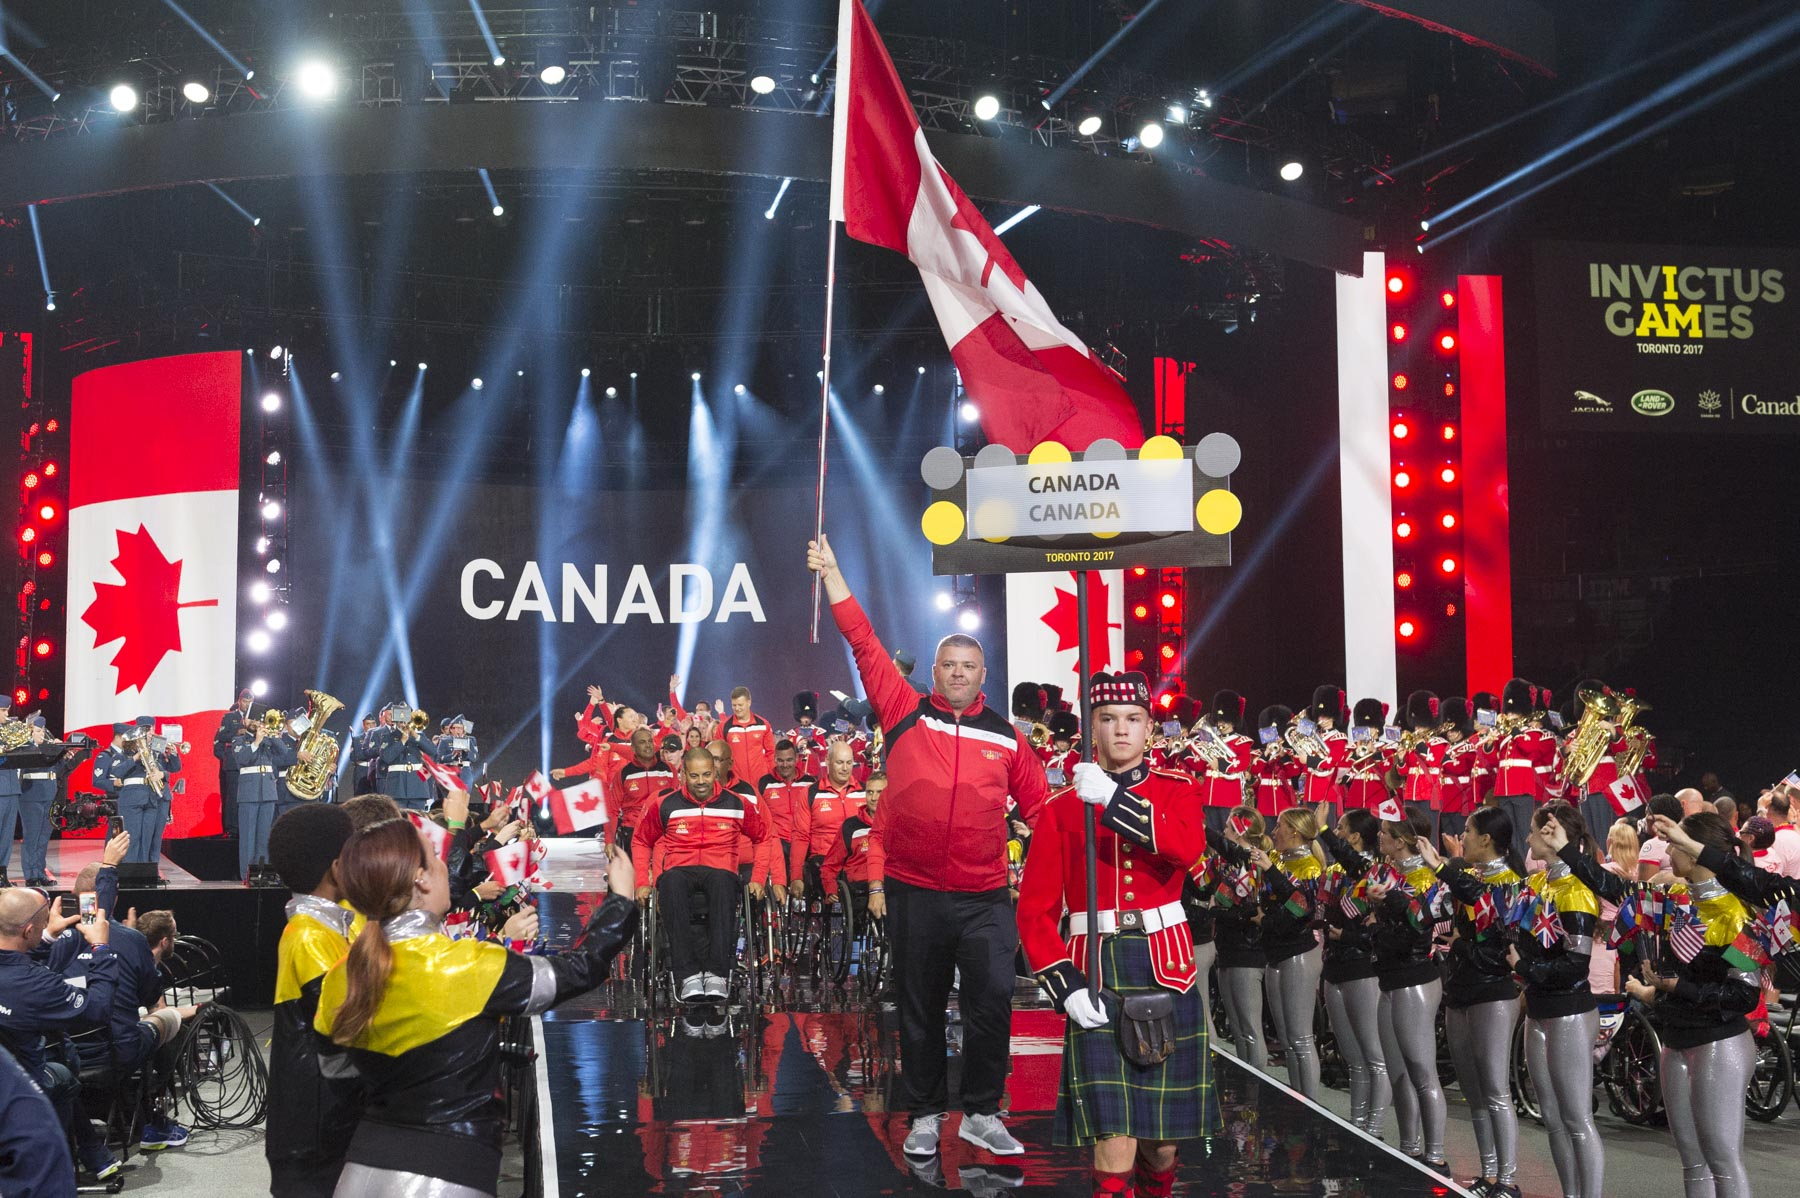 Canadian competitors were led by flag-bearer Corporal Phil Badania.